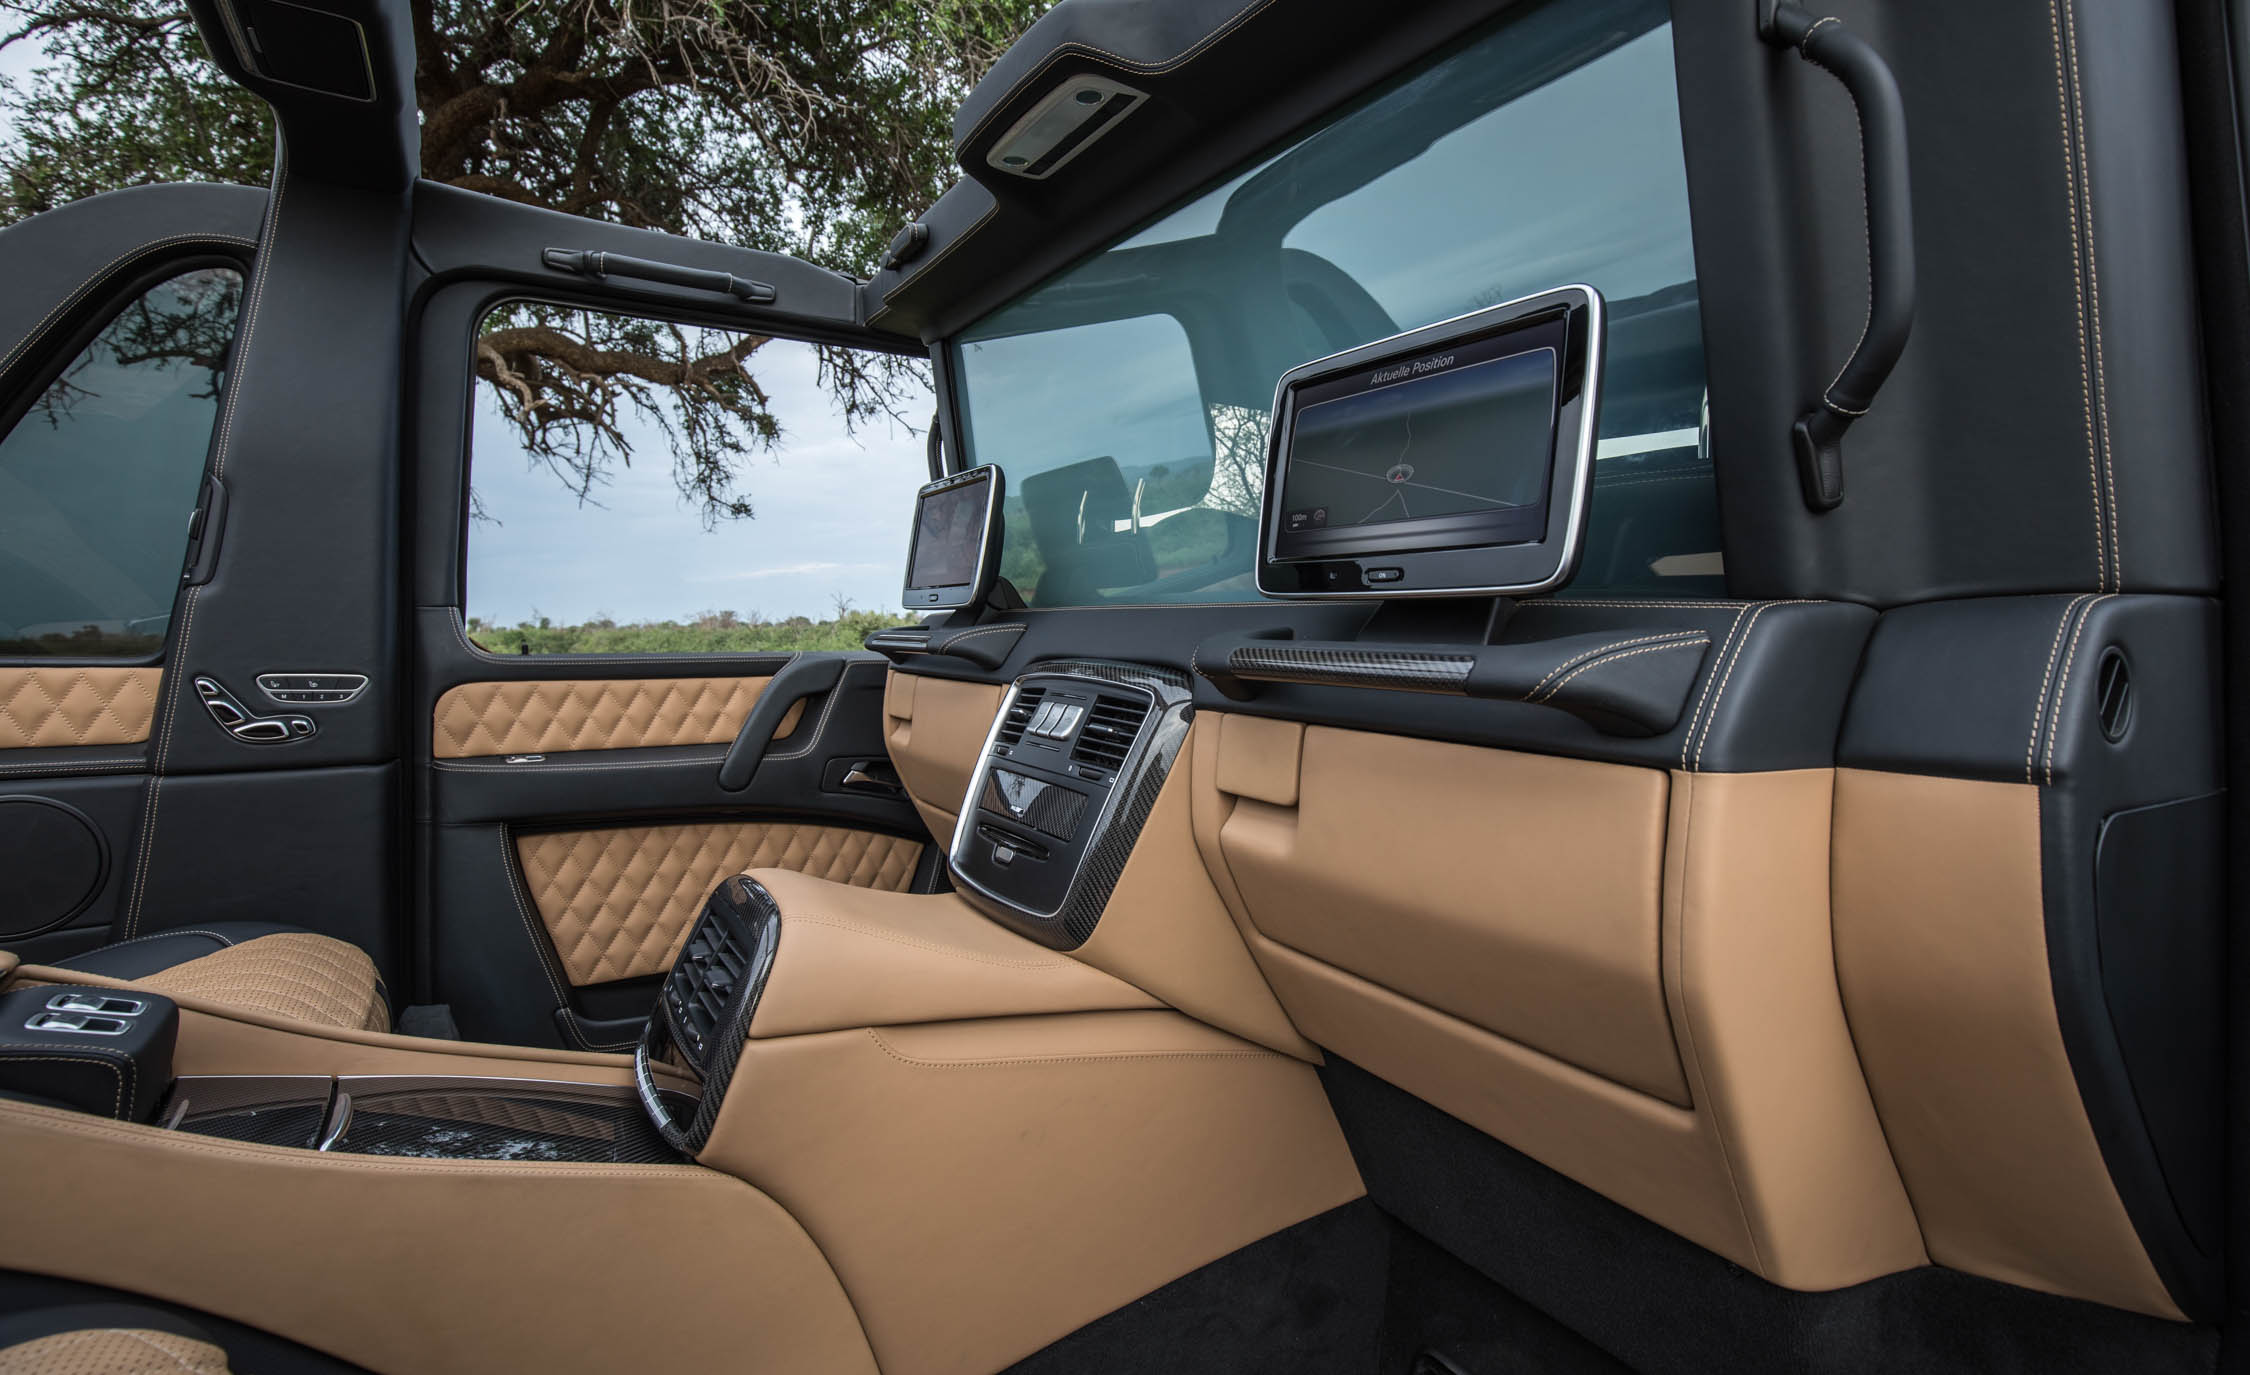 2018 Mercedes Maybach G650 Landaulet Interior Rear Dashboard And Headunit Multimedia Screen (View 37 of 52)